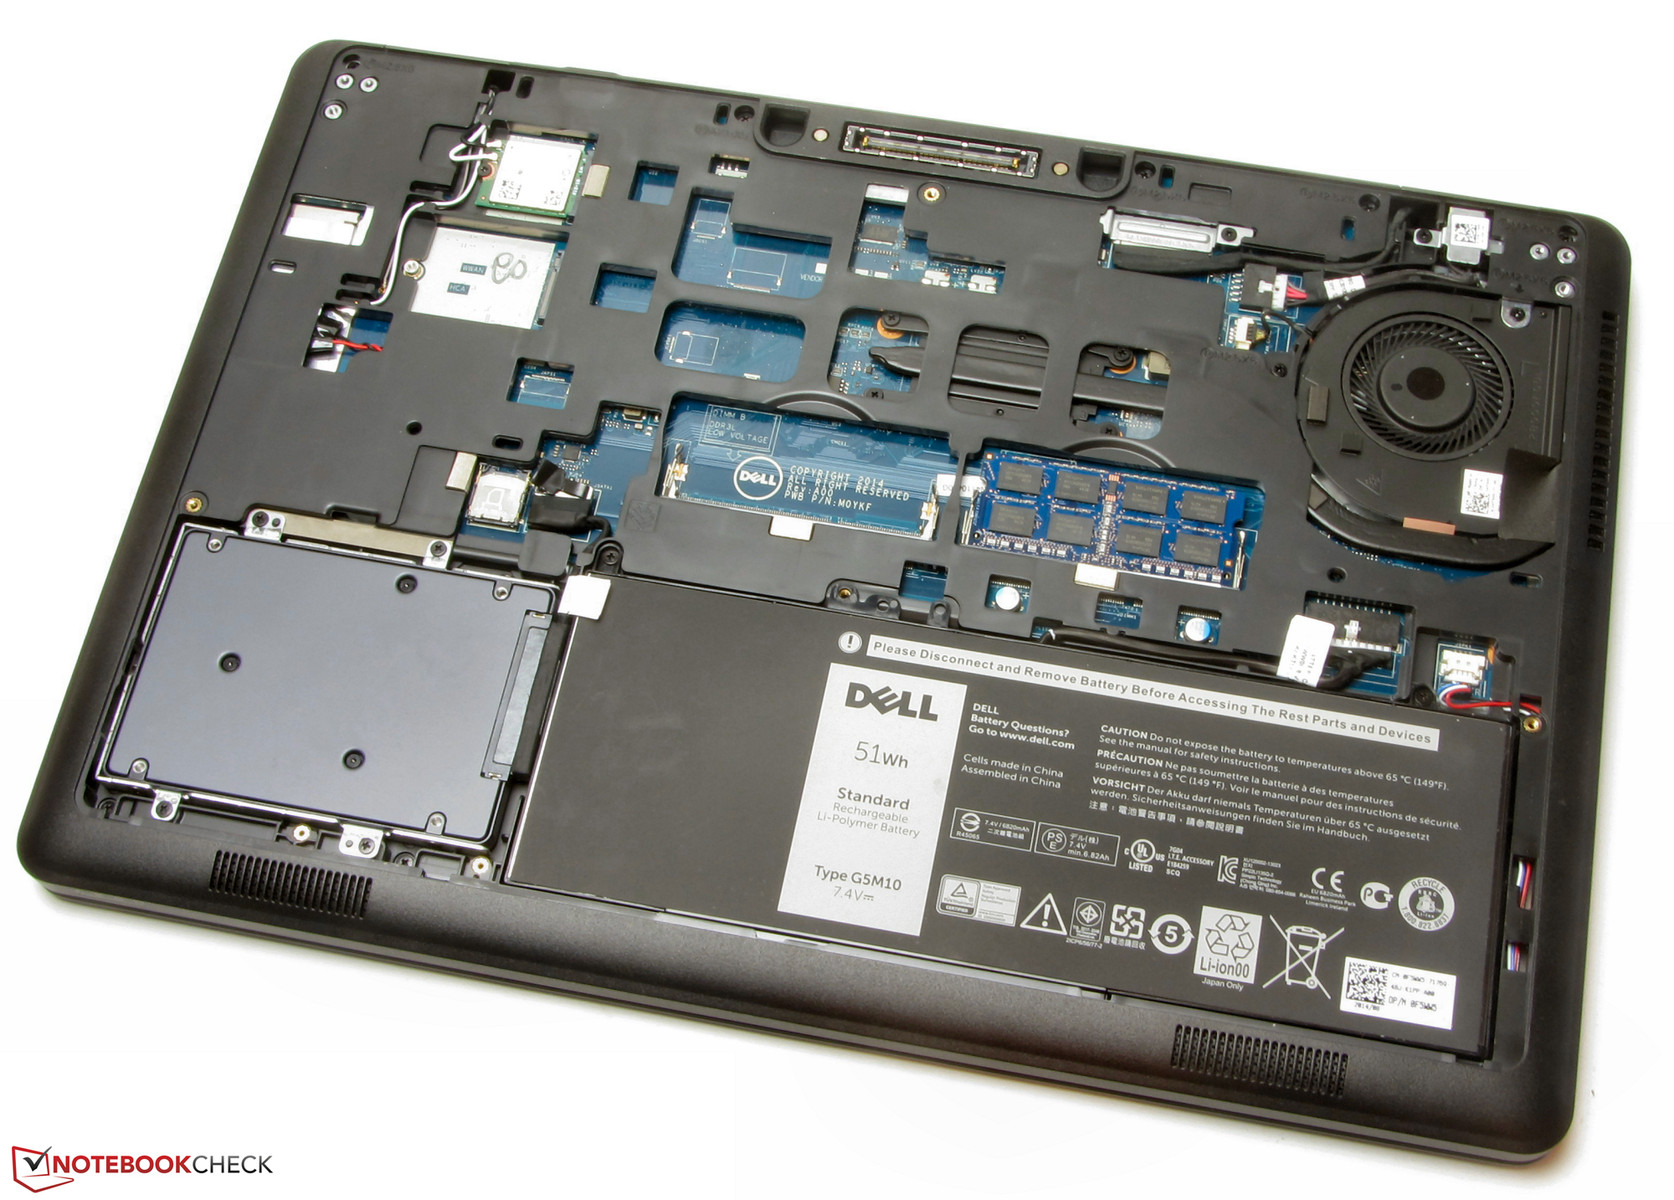 Dell Latitude E5550 Broadwell Notebook Review Update